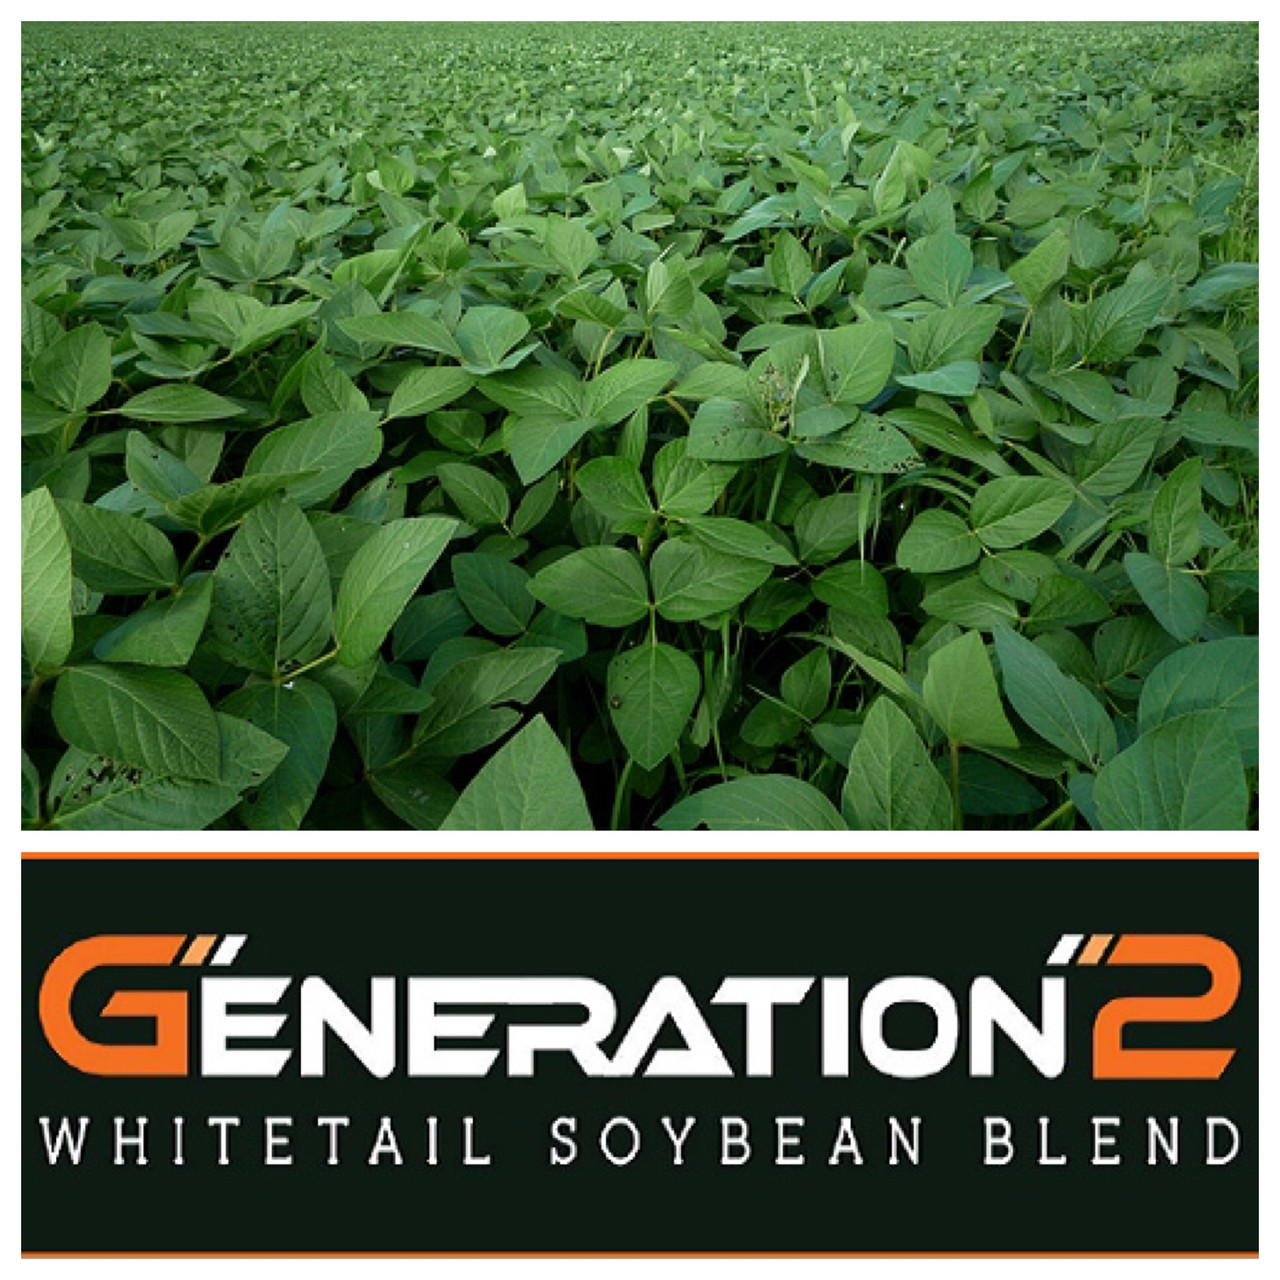 Real World Soybeans - Generation 2